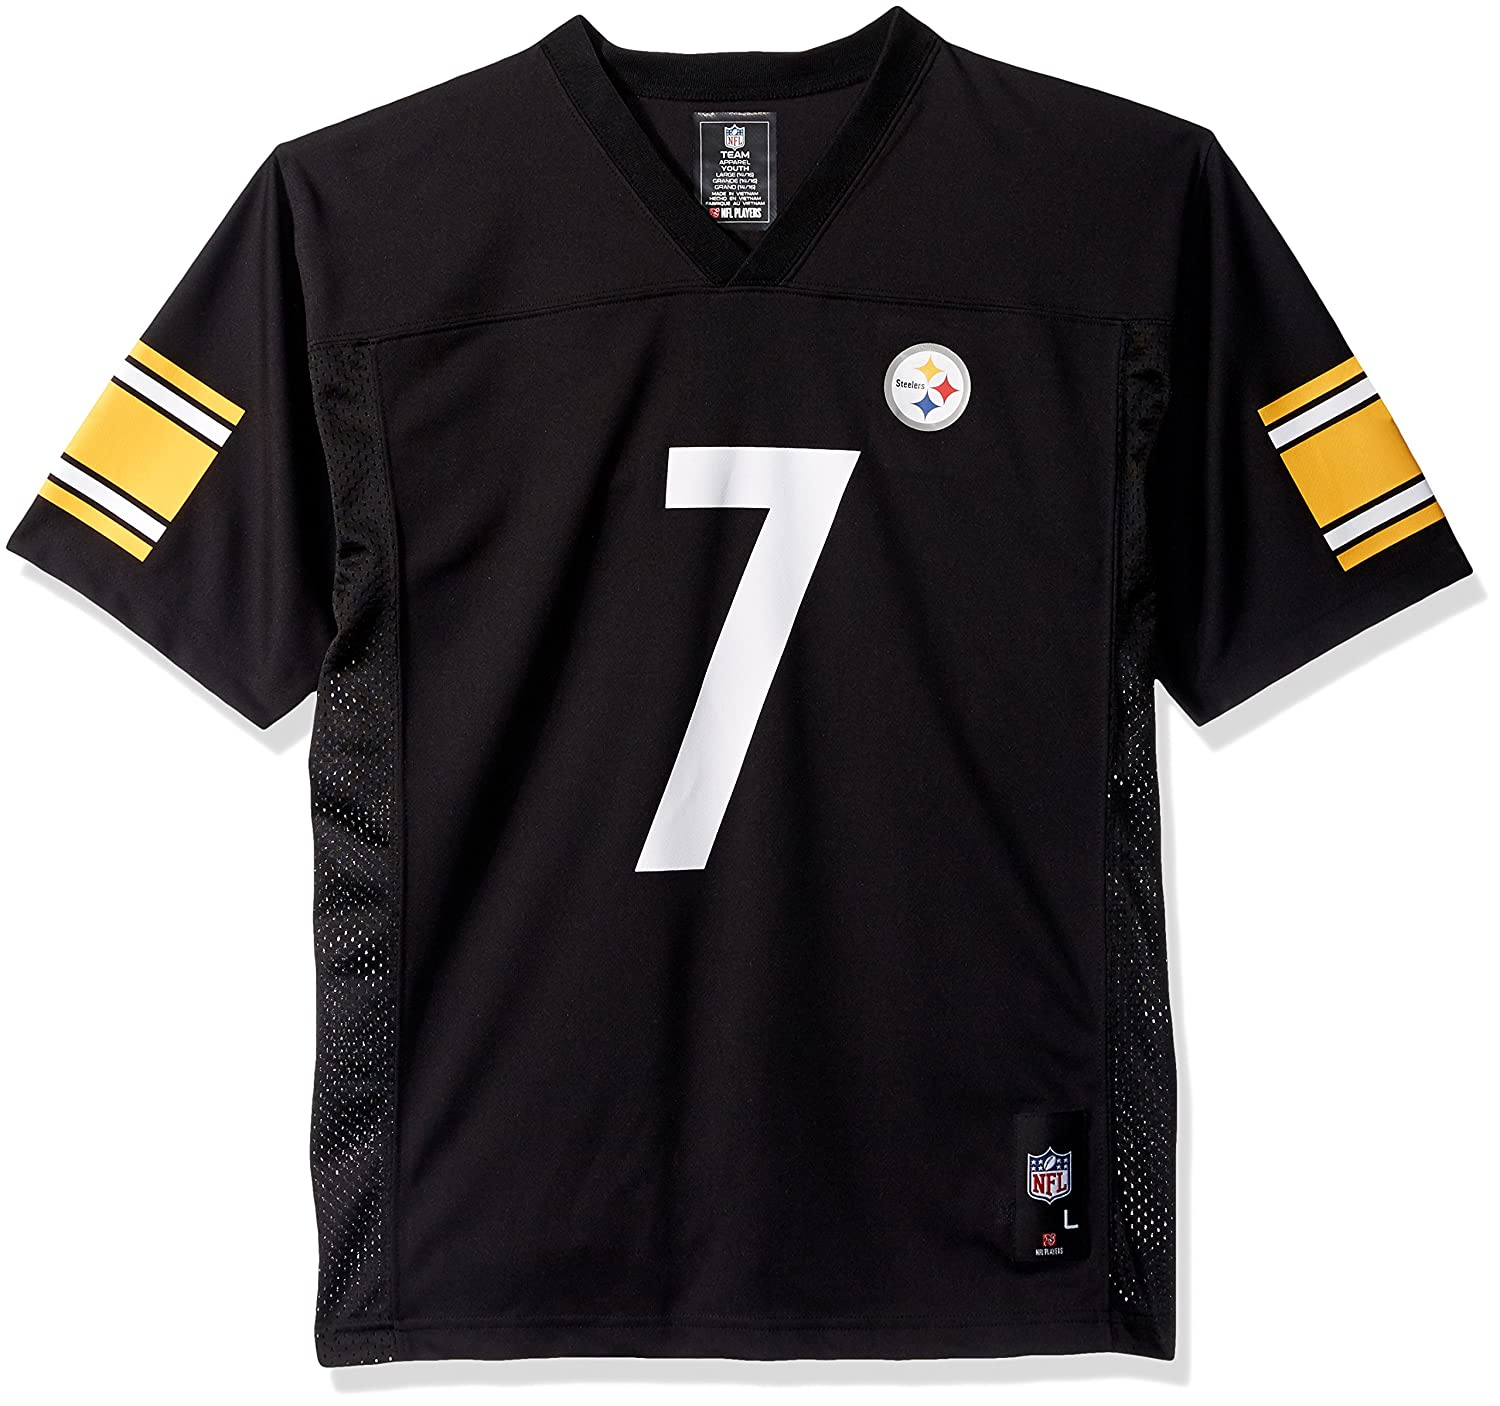 online retailer 7fbc0 09f76 Outerstuff Ben Roethlisberger Pittsburgh Steelers Youth Black Jersey